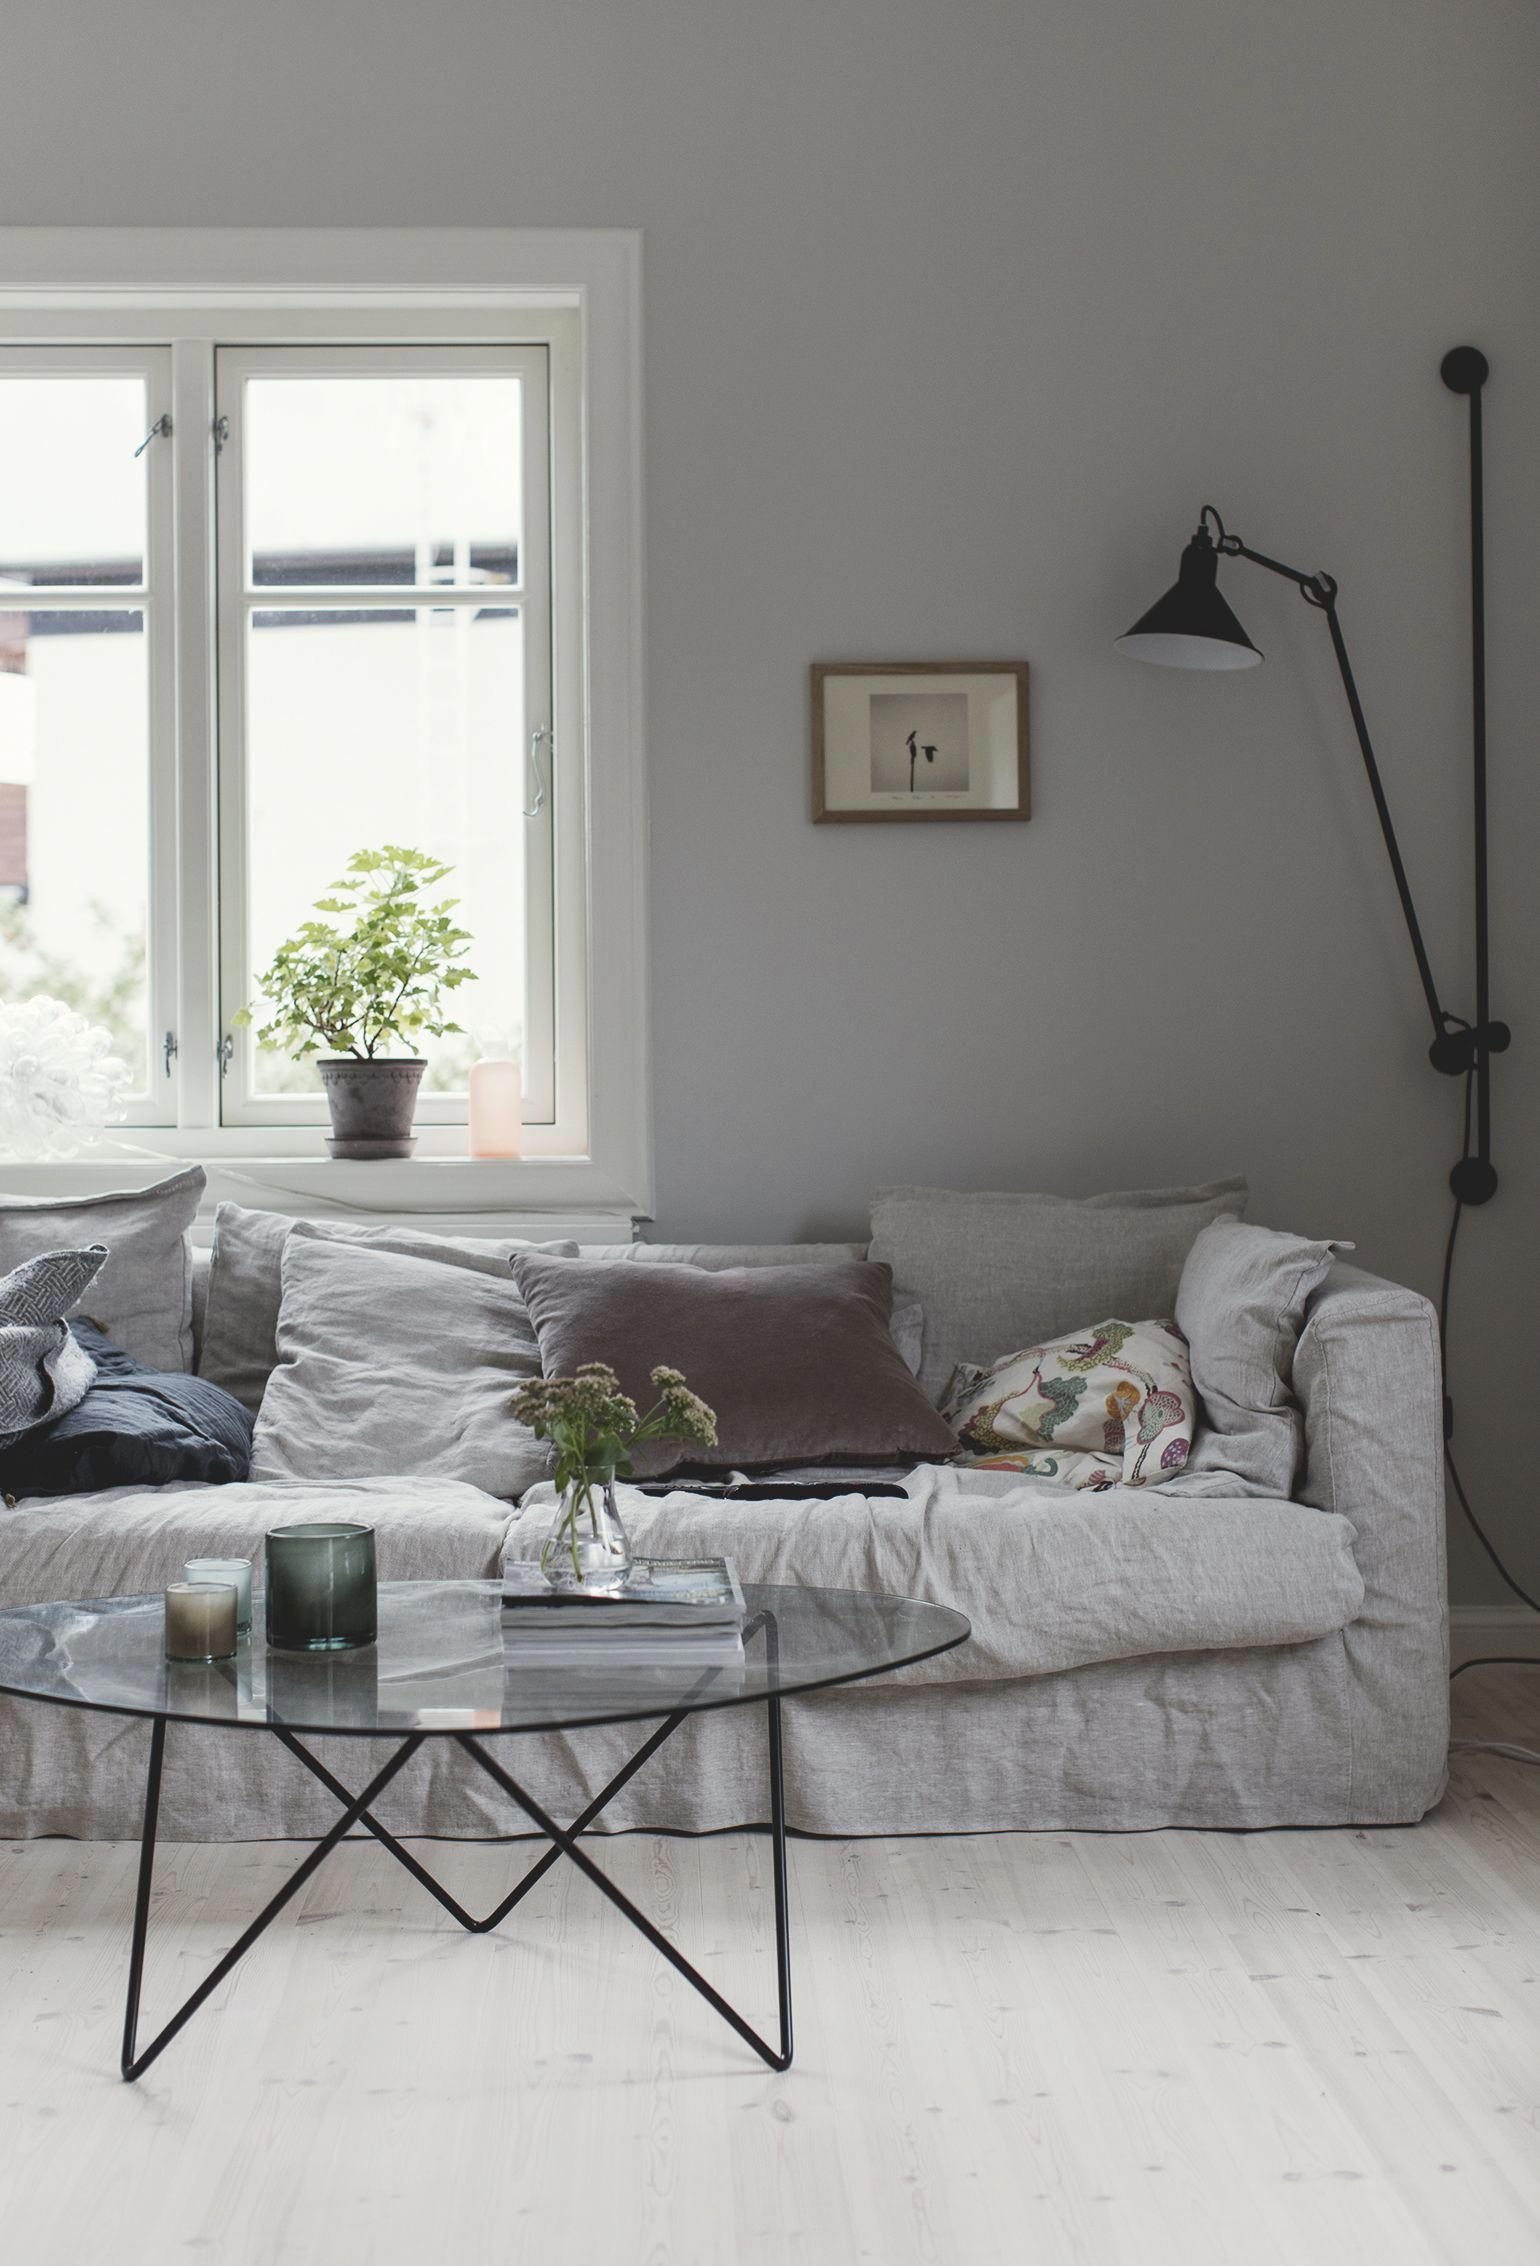 Winter Inspirations For A Green Living Room Med Billeder Hjem Hus Inspiration Inspiration